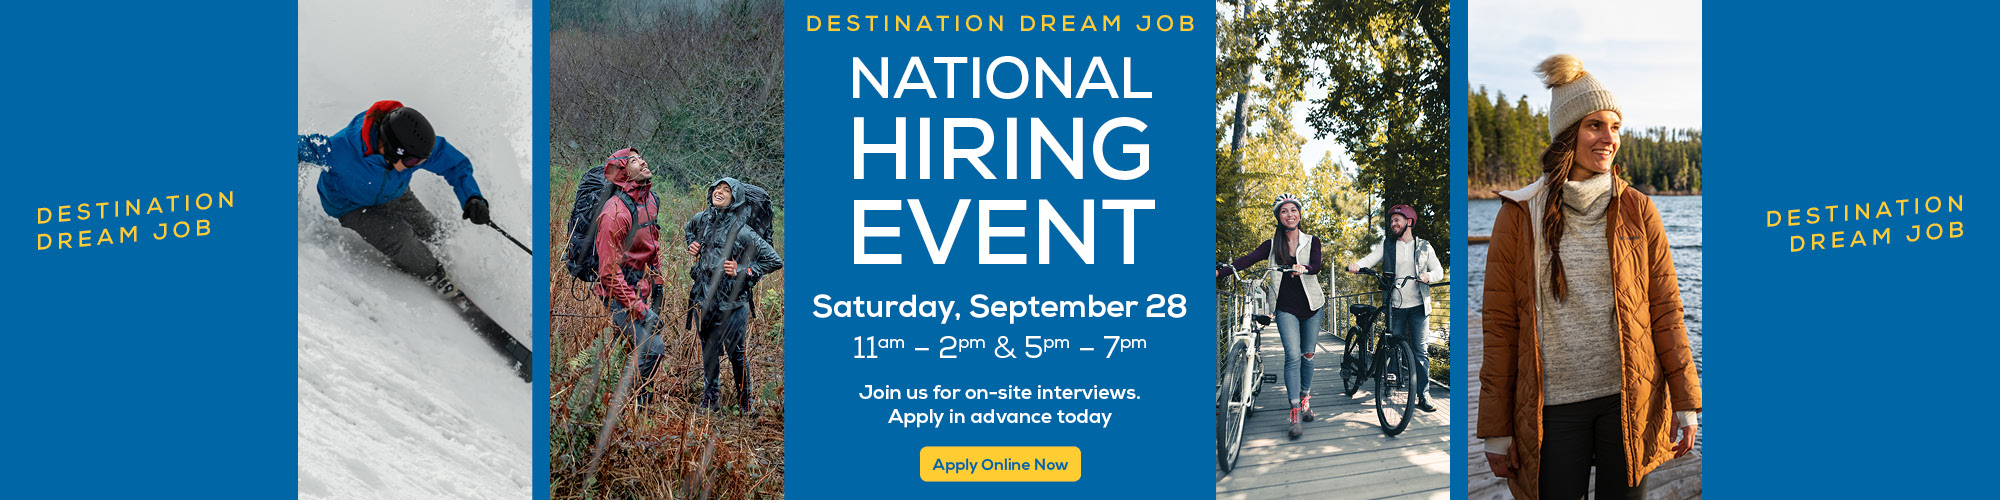 Sept 28th - National Hiring Event